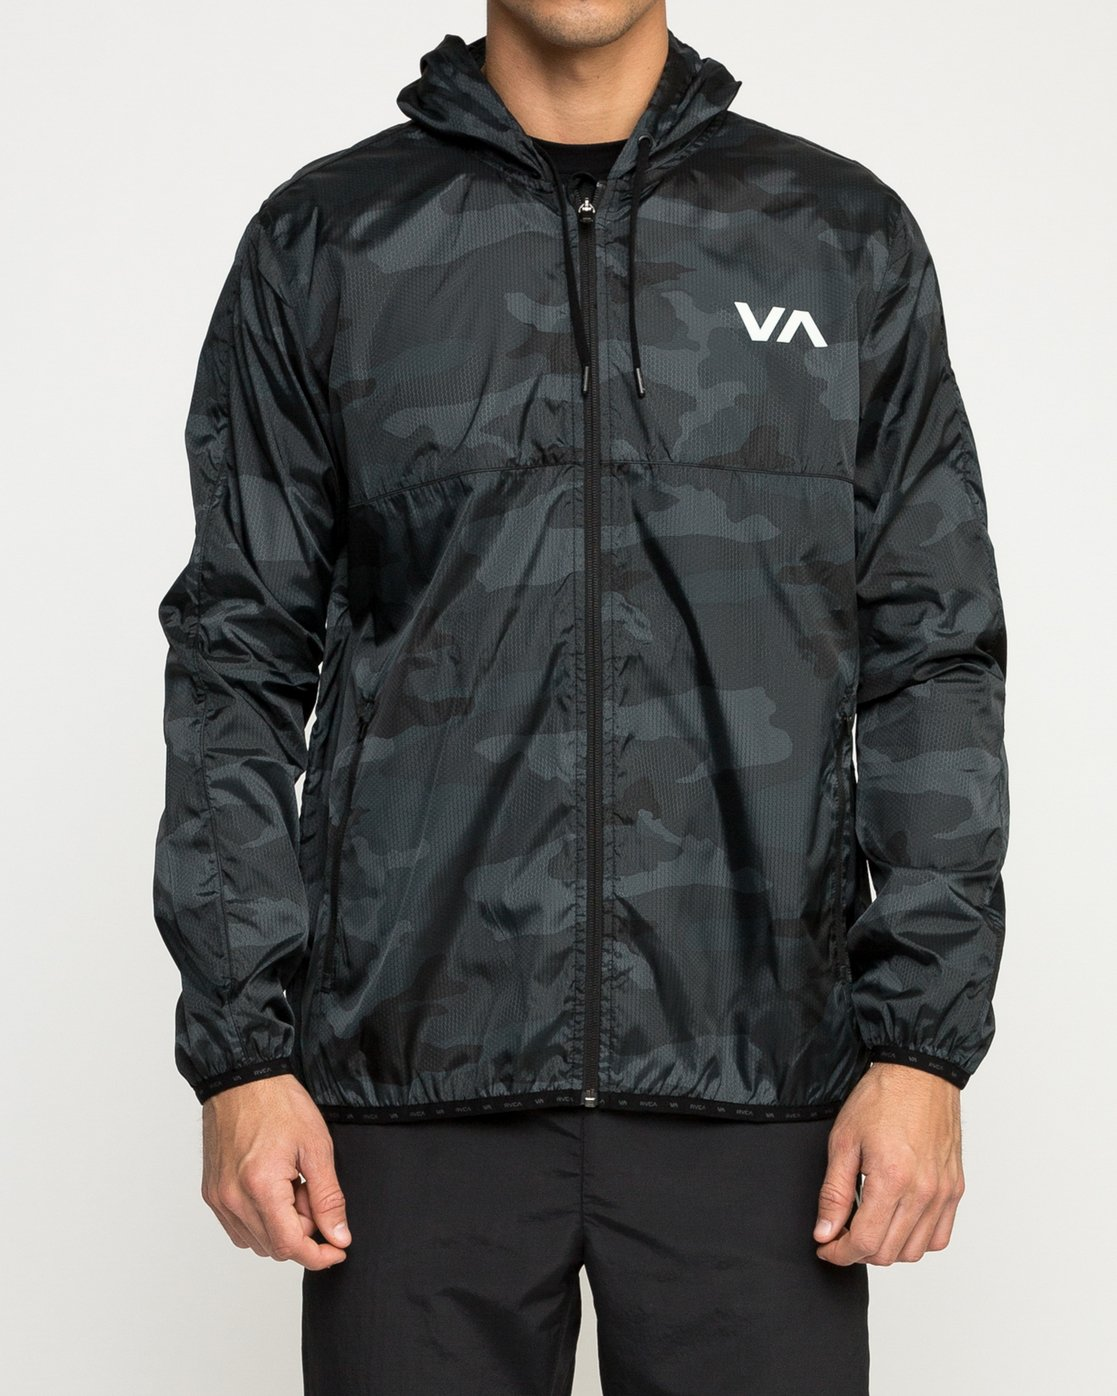 1 Hexstop Iv - Jacket for Men Camo N4JKMBRVP9 RVCA